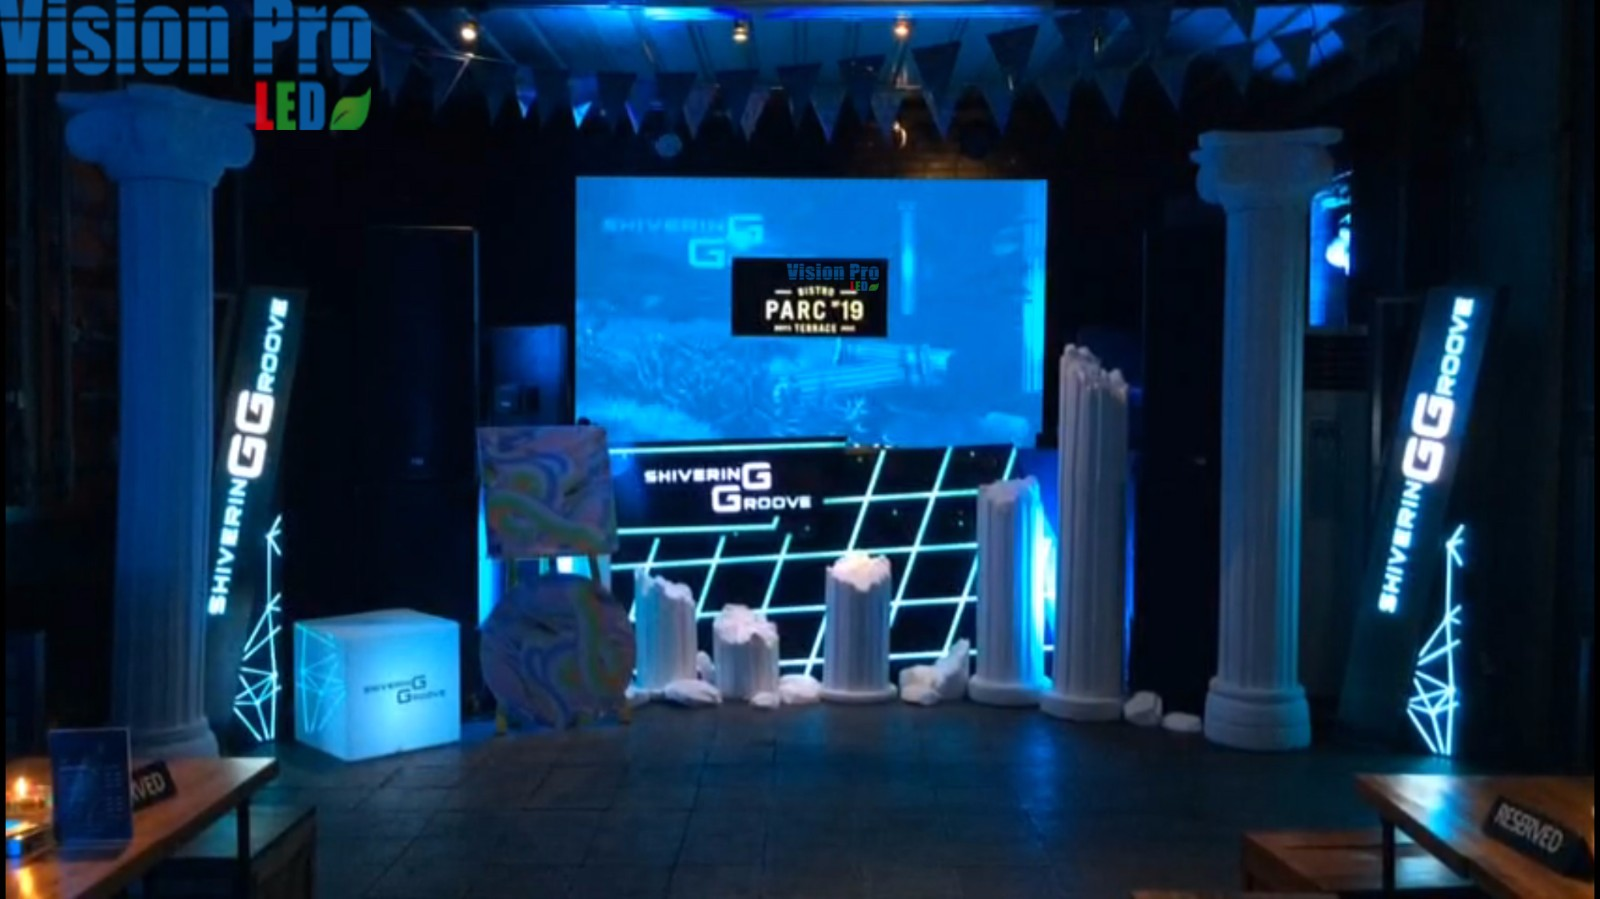 PH4 LED Display for Auto Show